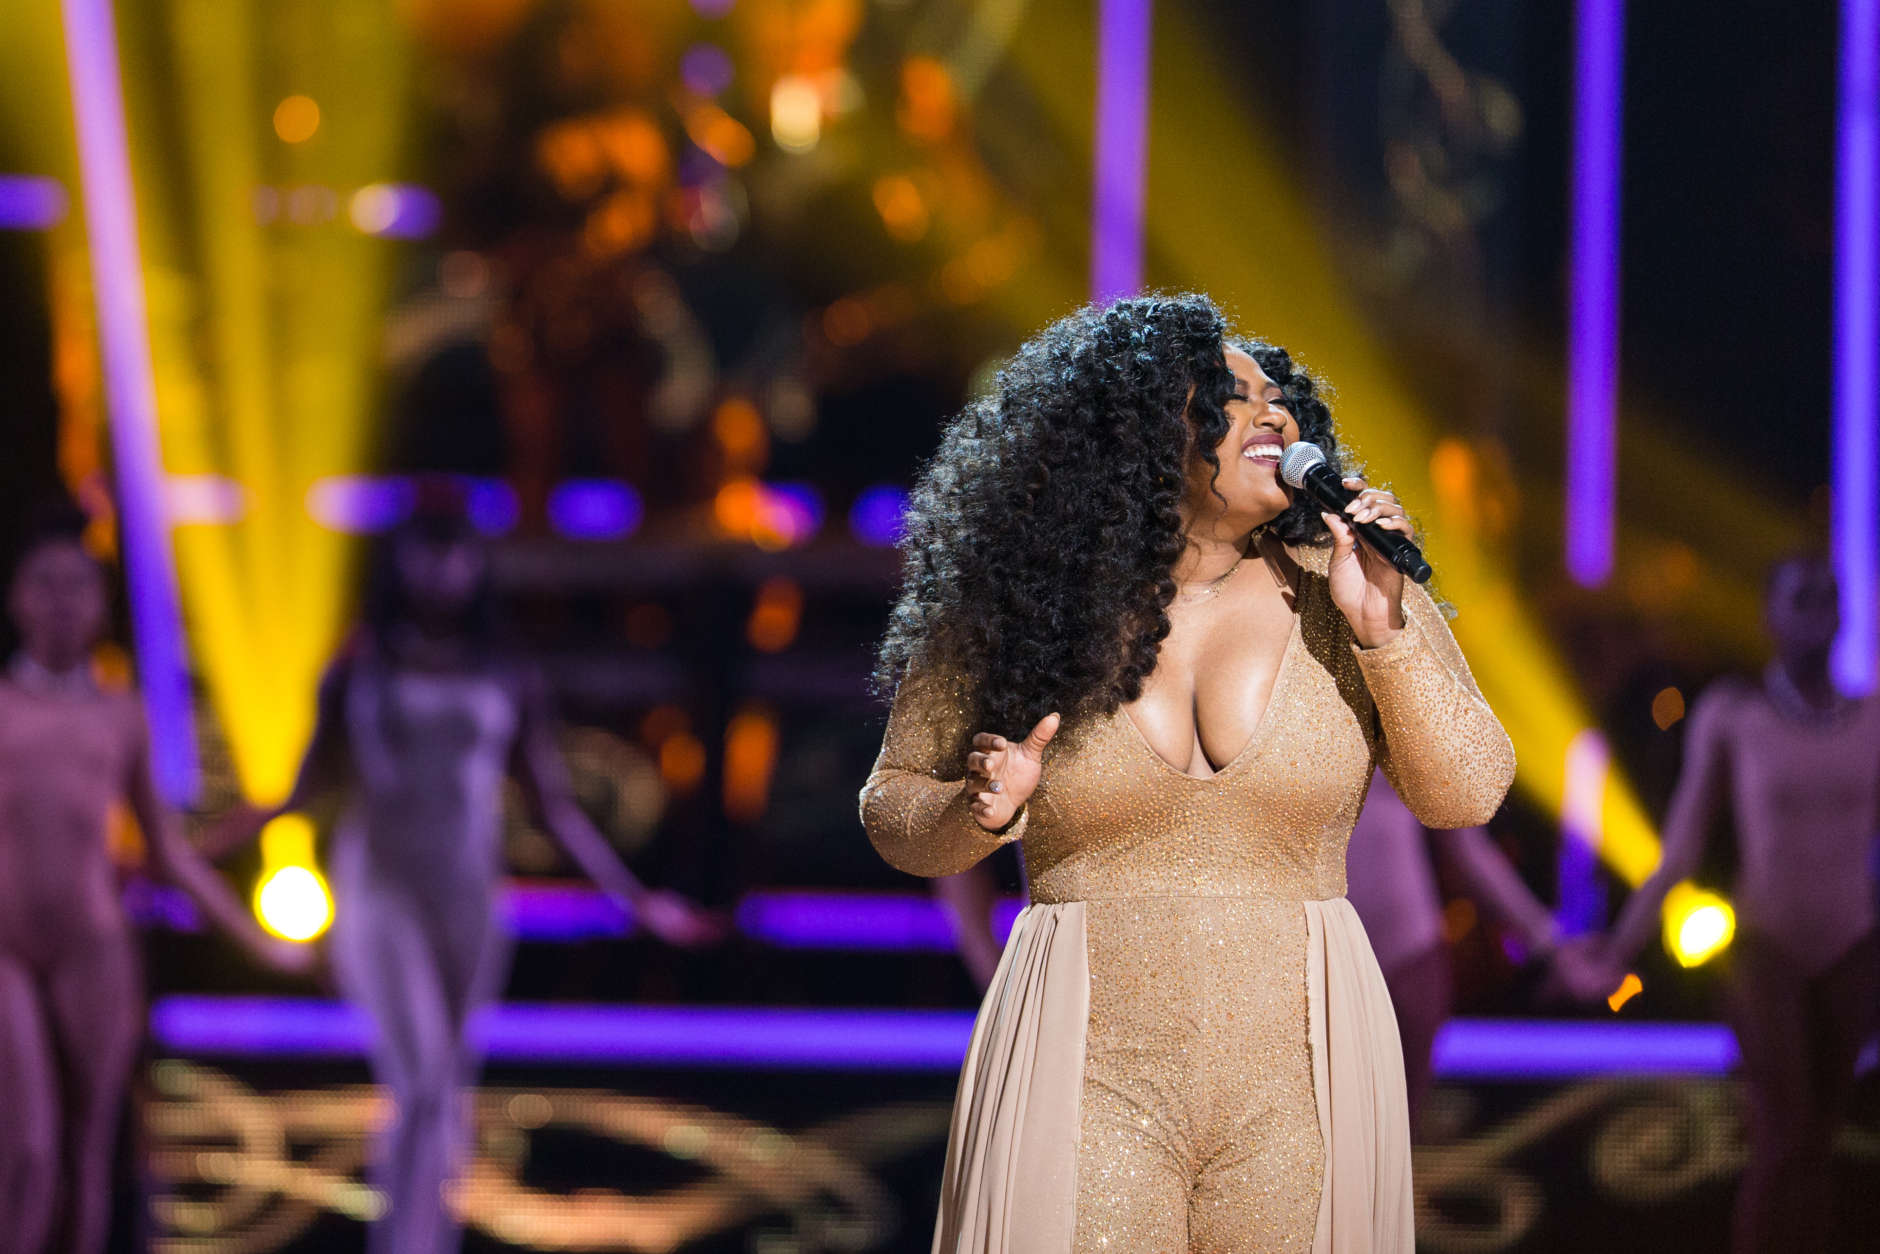 Jazmine Sullivan is seen at 2016 Black Girls Rock! at New Jersey Performing Arts Center on Friday, April, 1, 2016 in Newark, NJ.  (Photo by Michael Zorn/Invision/AP)